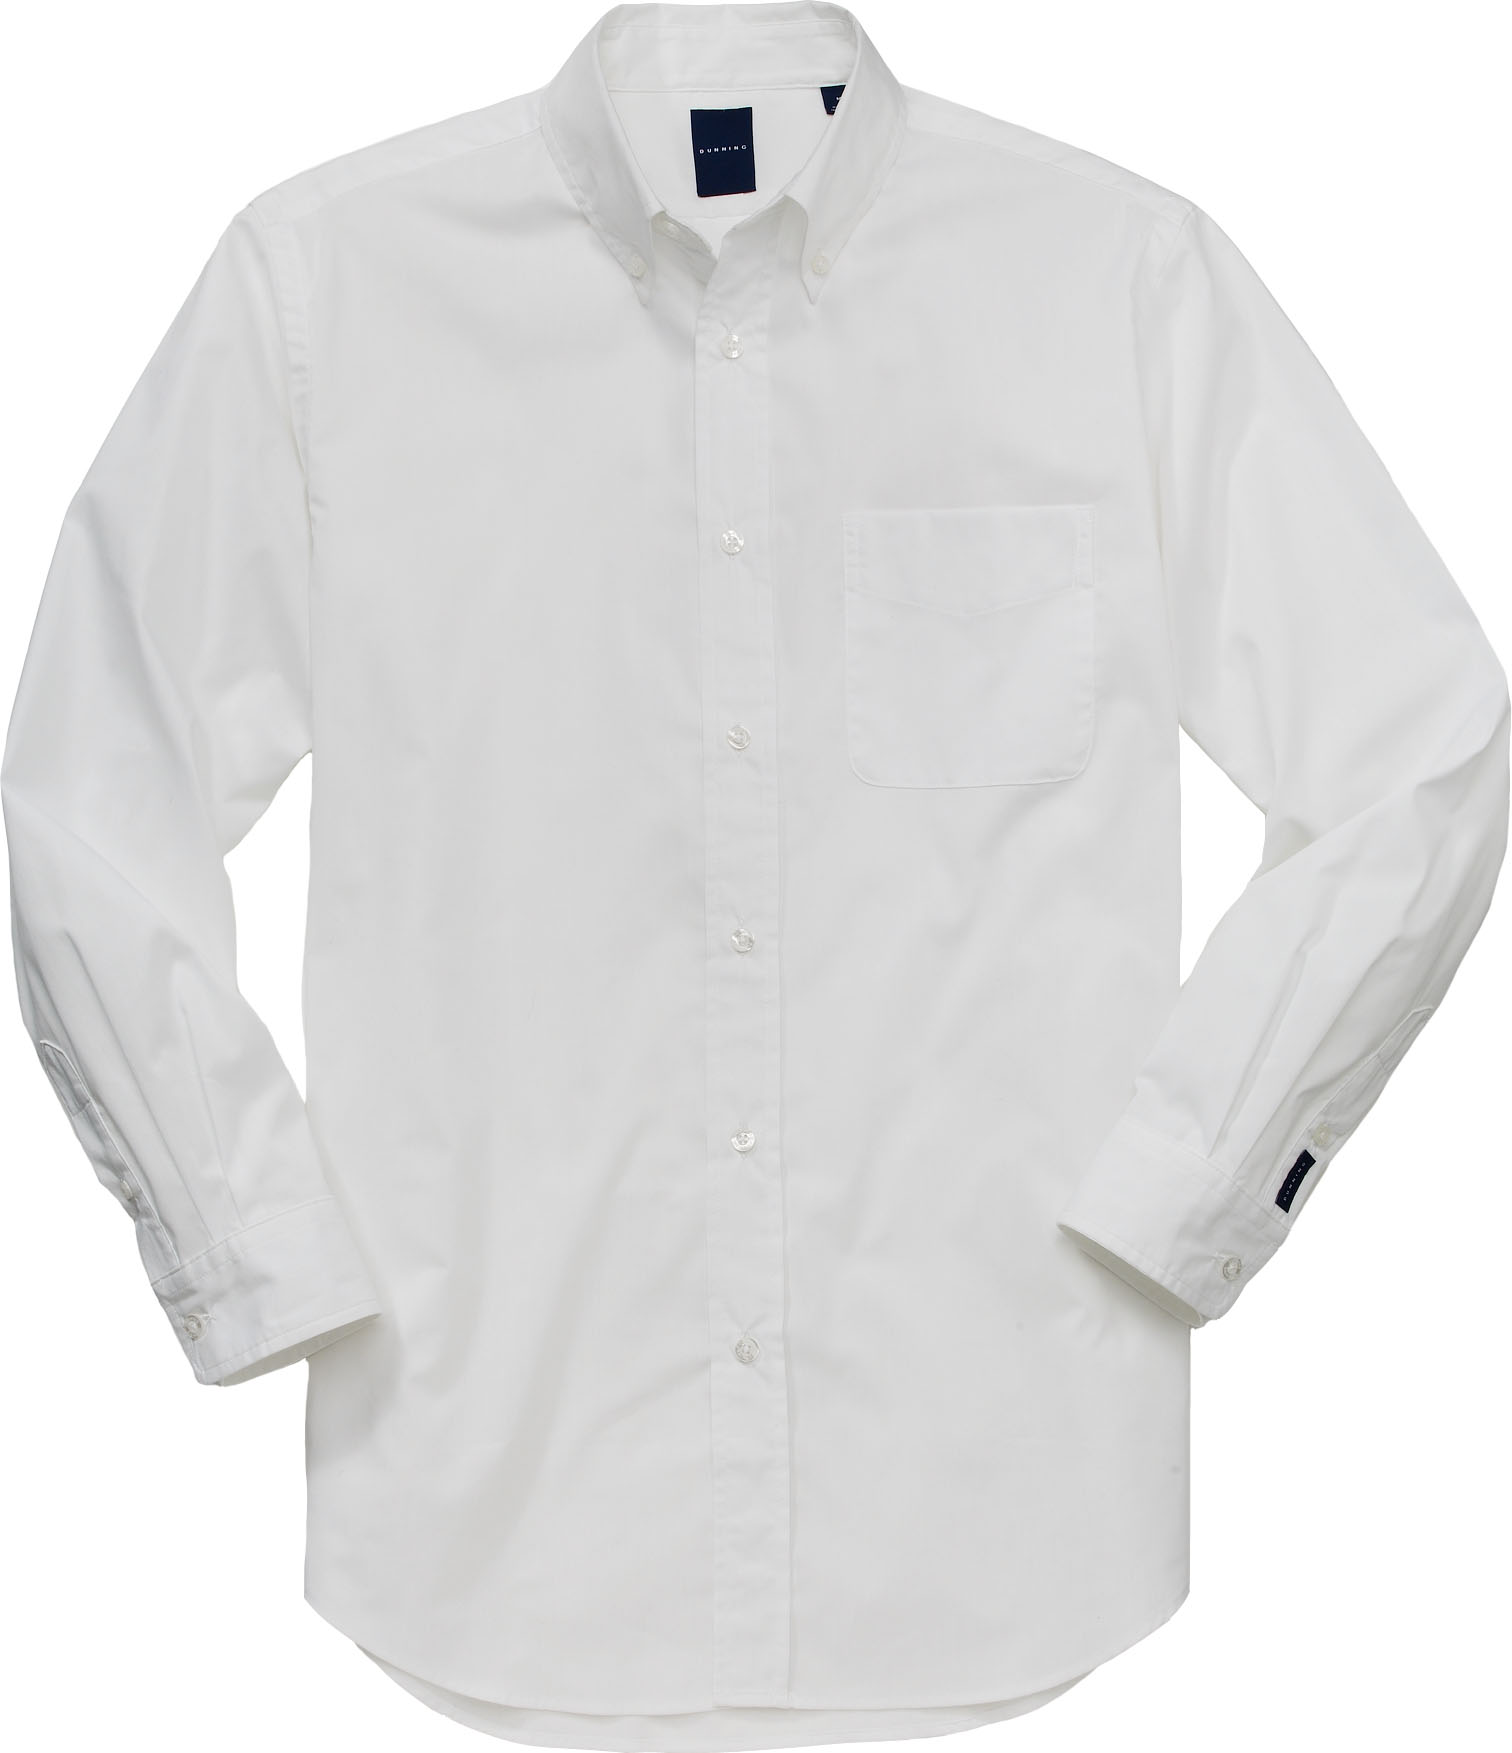 Performance Woven Button Down